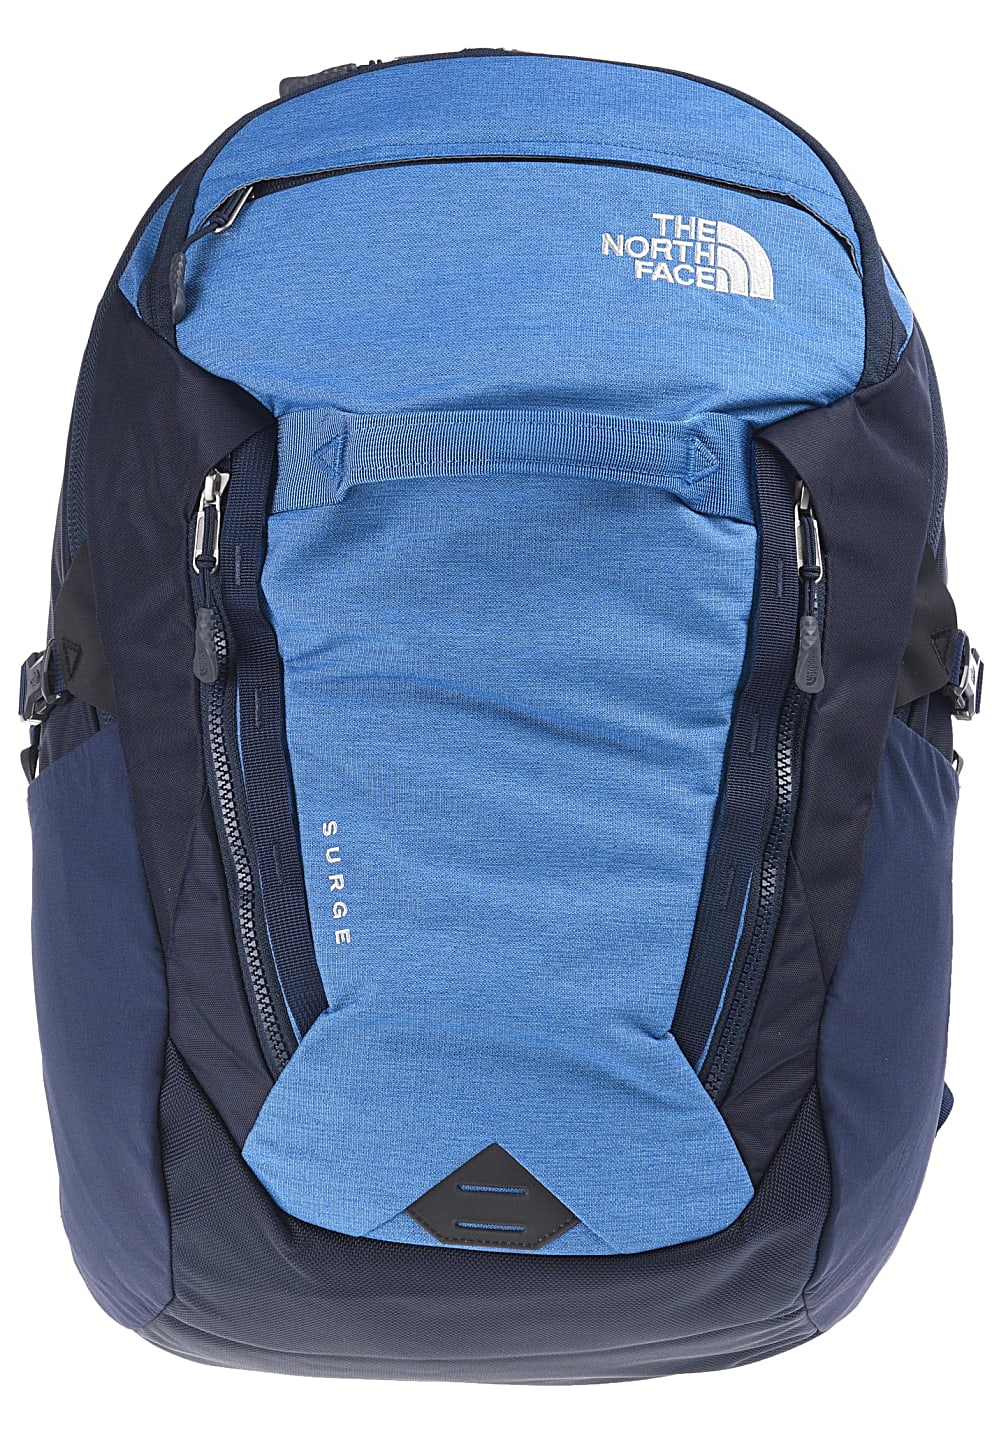 0f996ce45 THE NORTH FACE Surge - Backpack - Blue